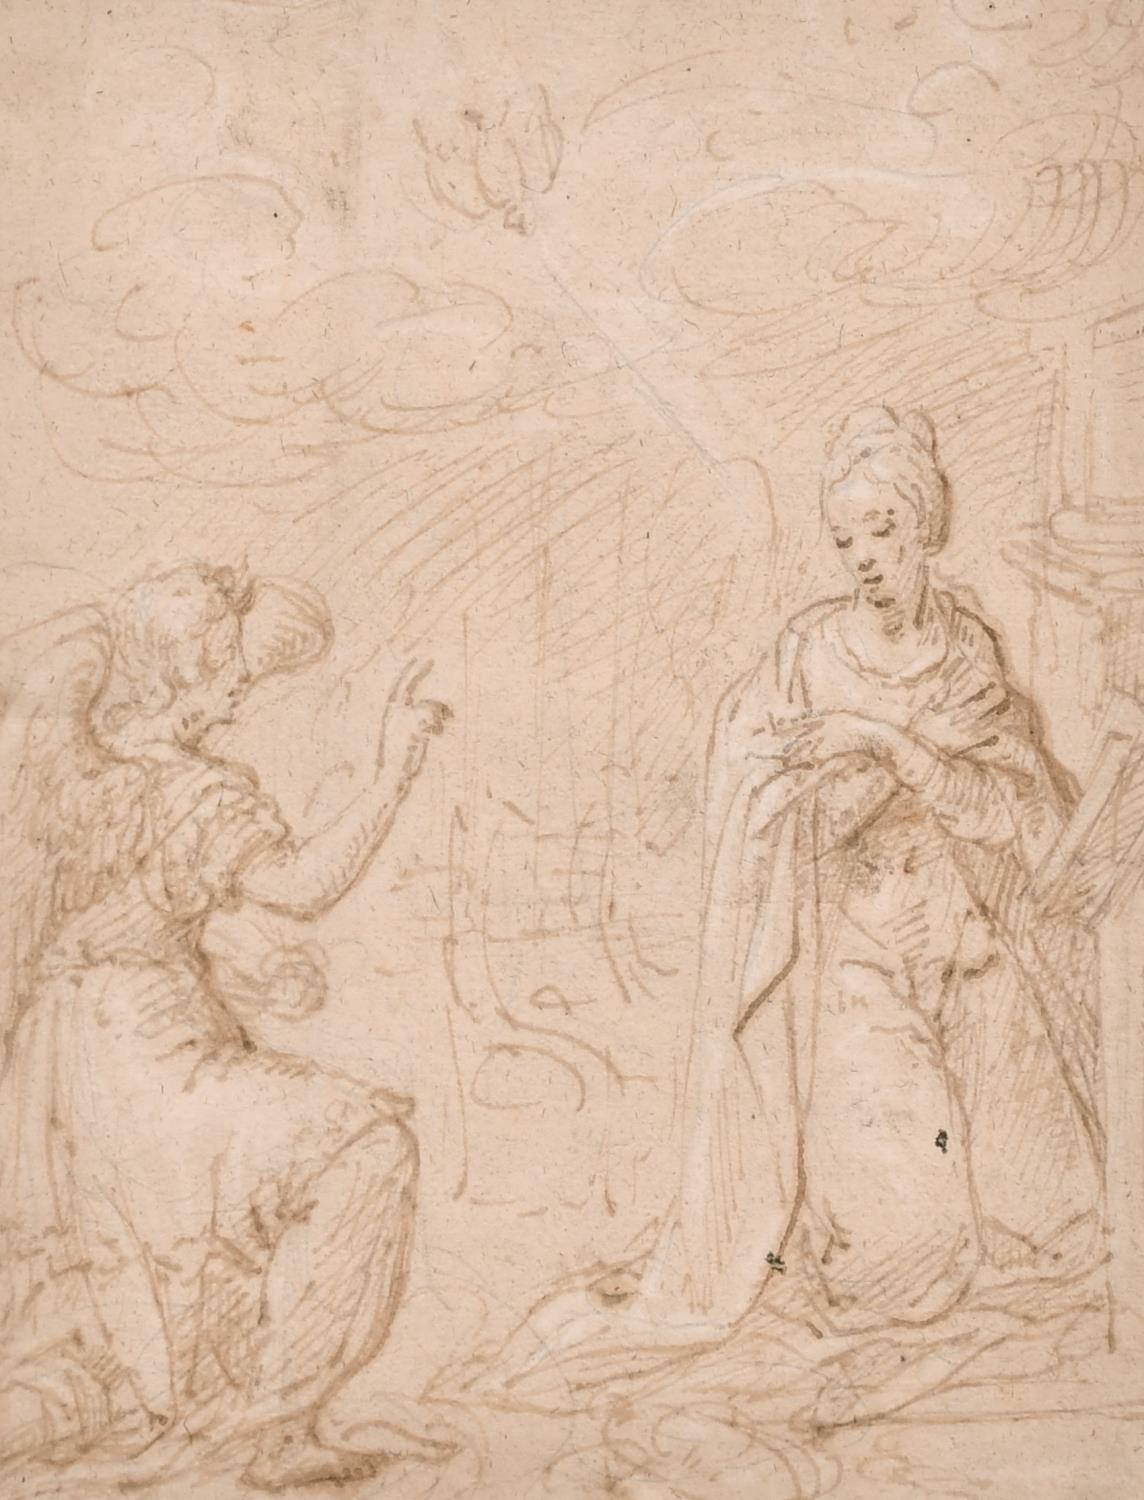 FINE EARLY 1700's OLD MASTER WASH DRAWING - GABRIEL APPEARING TO THE VIRGIN MARY